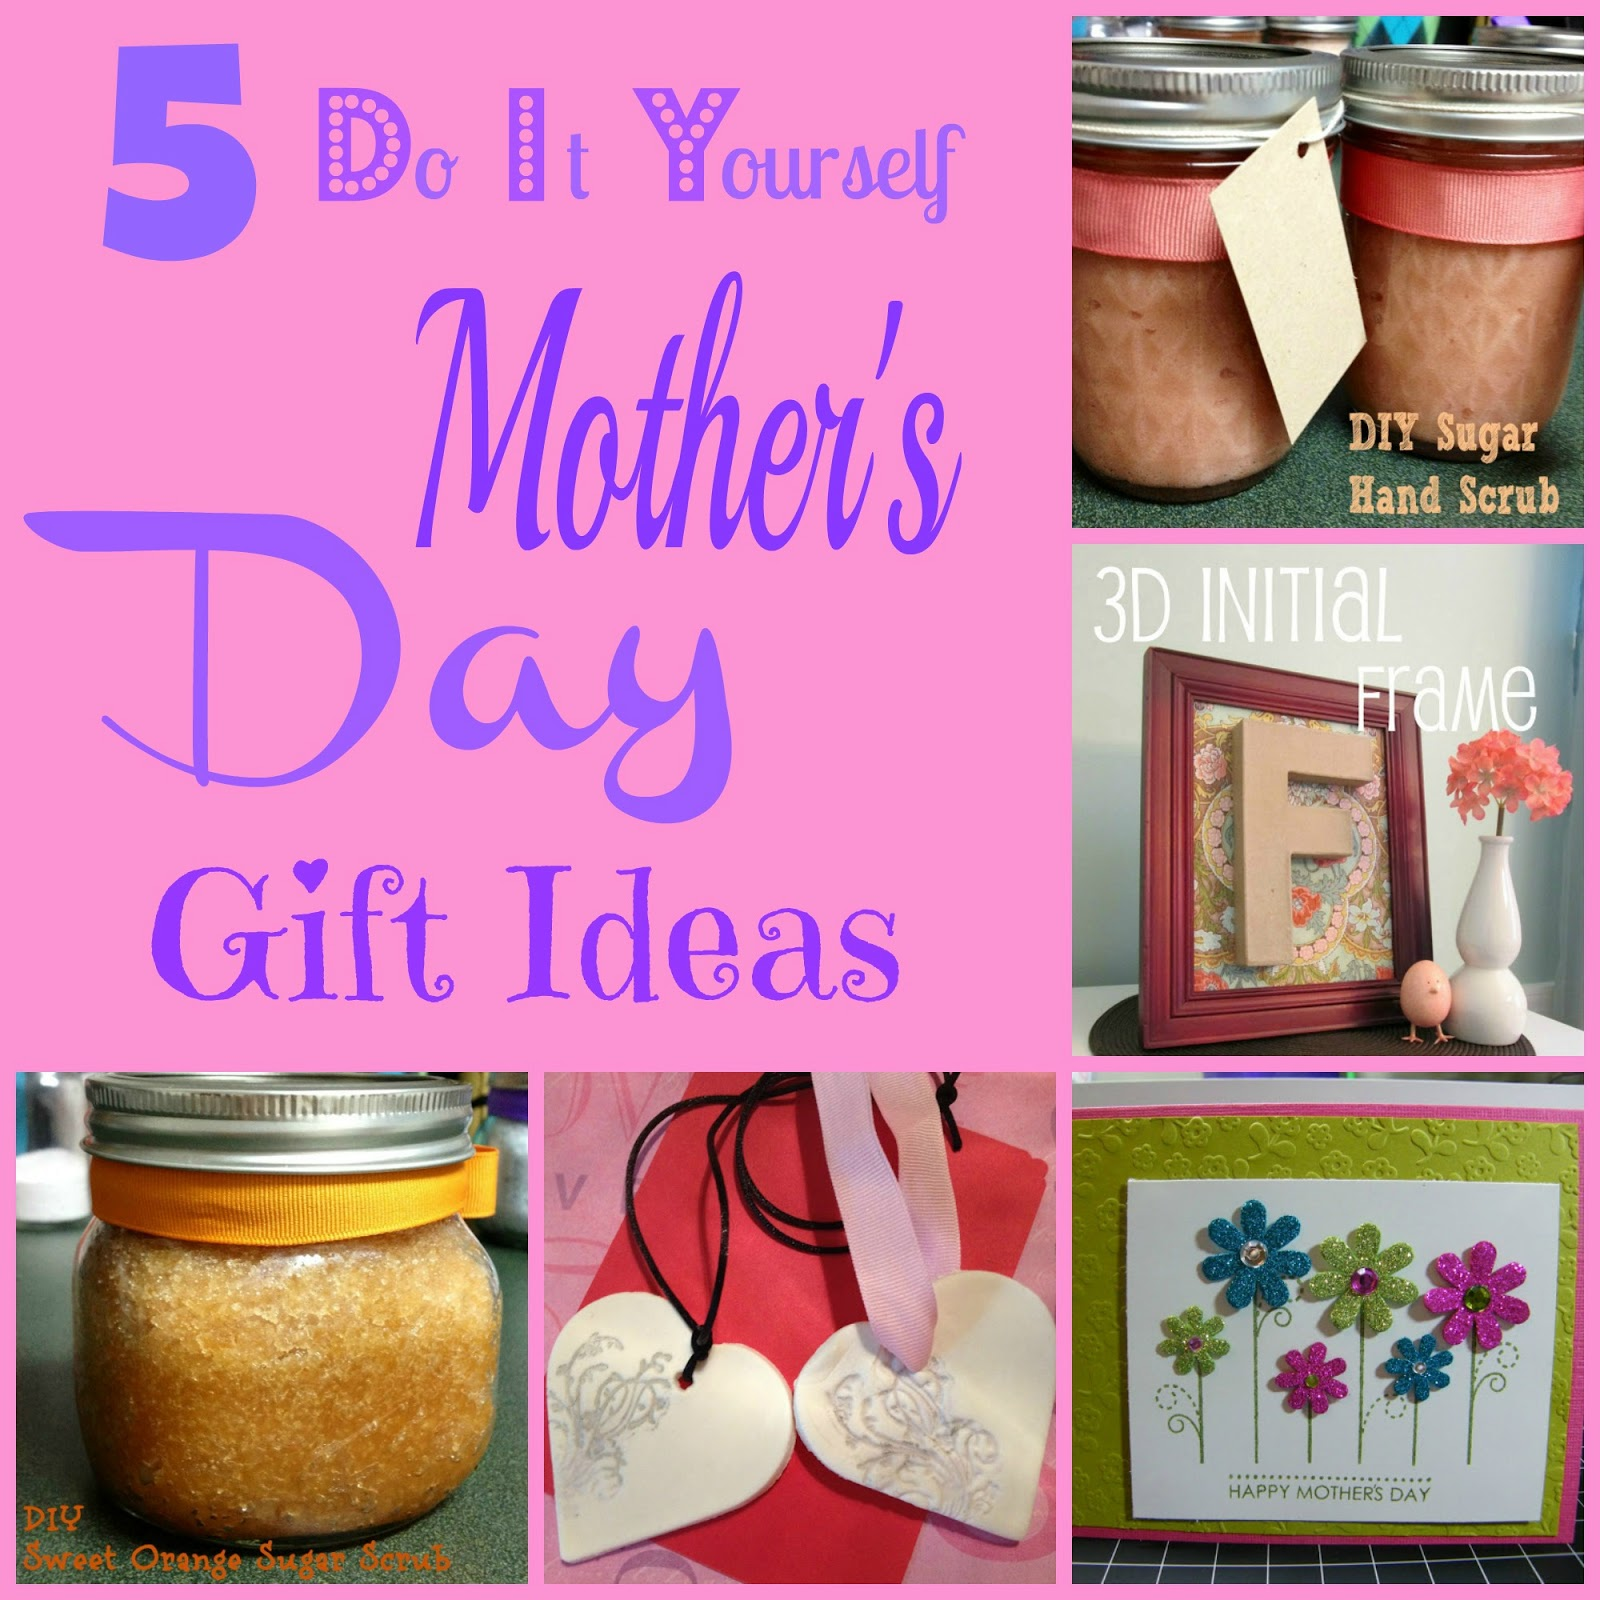 5 diy mother 39 s day gift ideas outnumbered 3 to 1 Mothers day presents diy